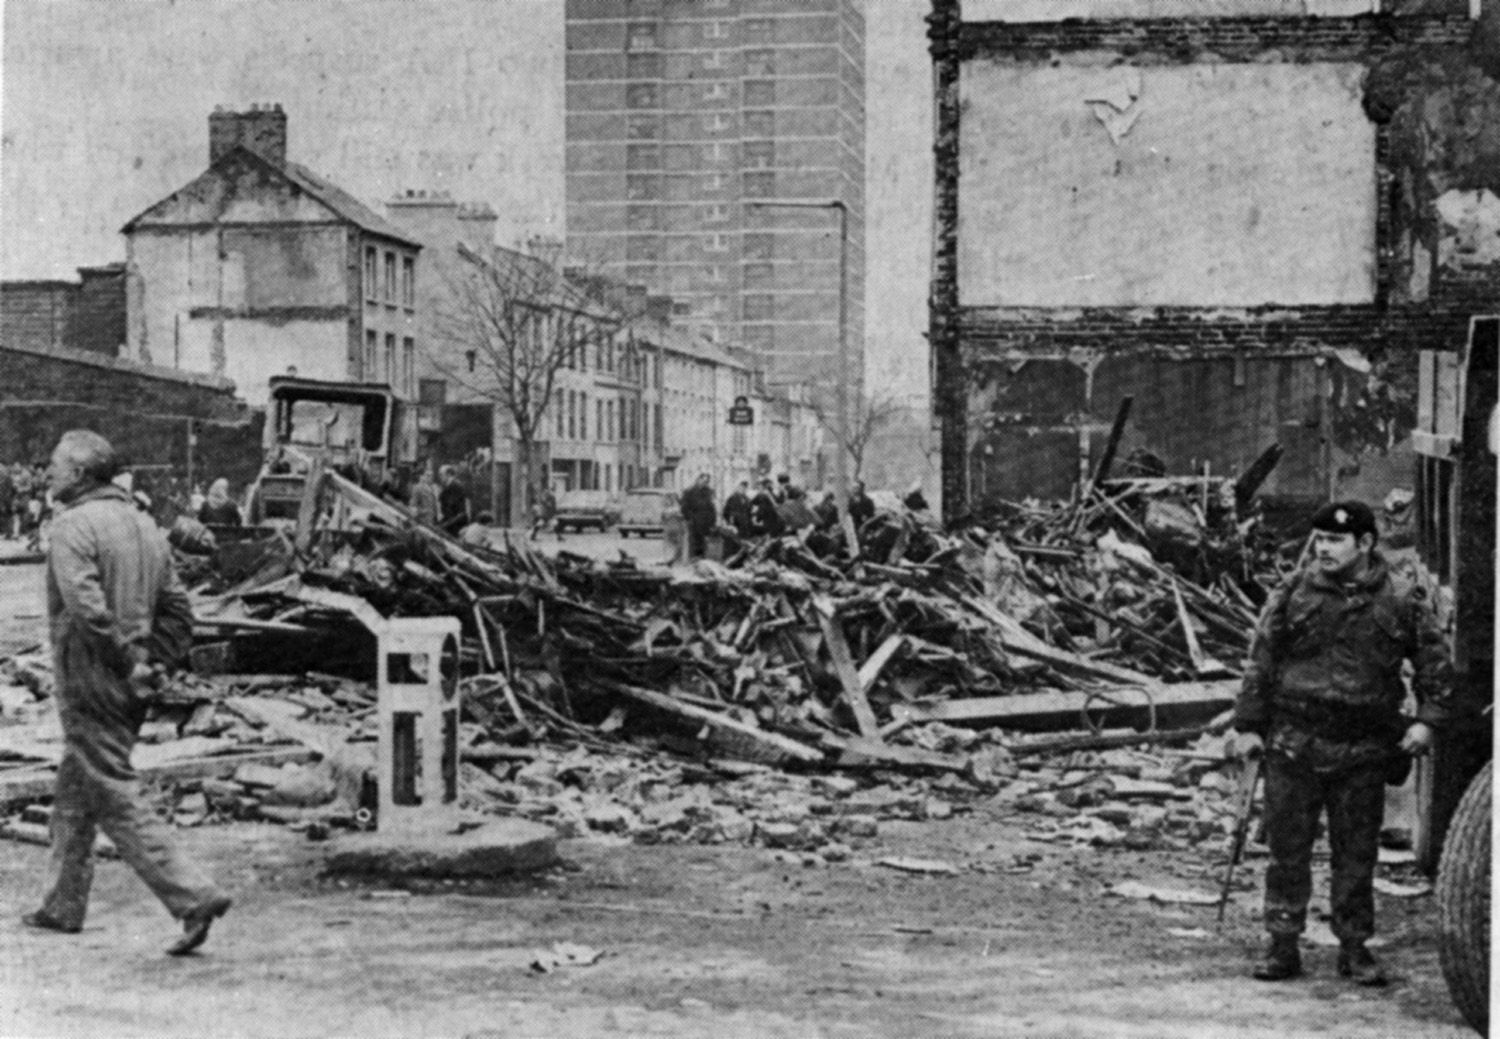 ATROCITY: 15 people were killed, included two children, in the bombing of McGurk\'s in 1971